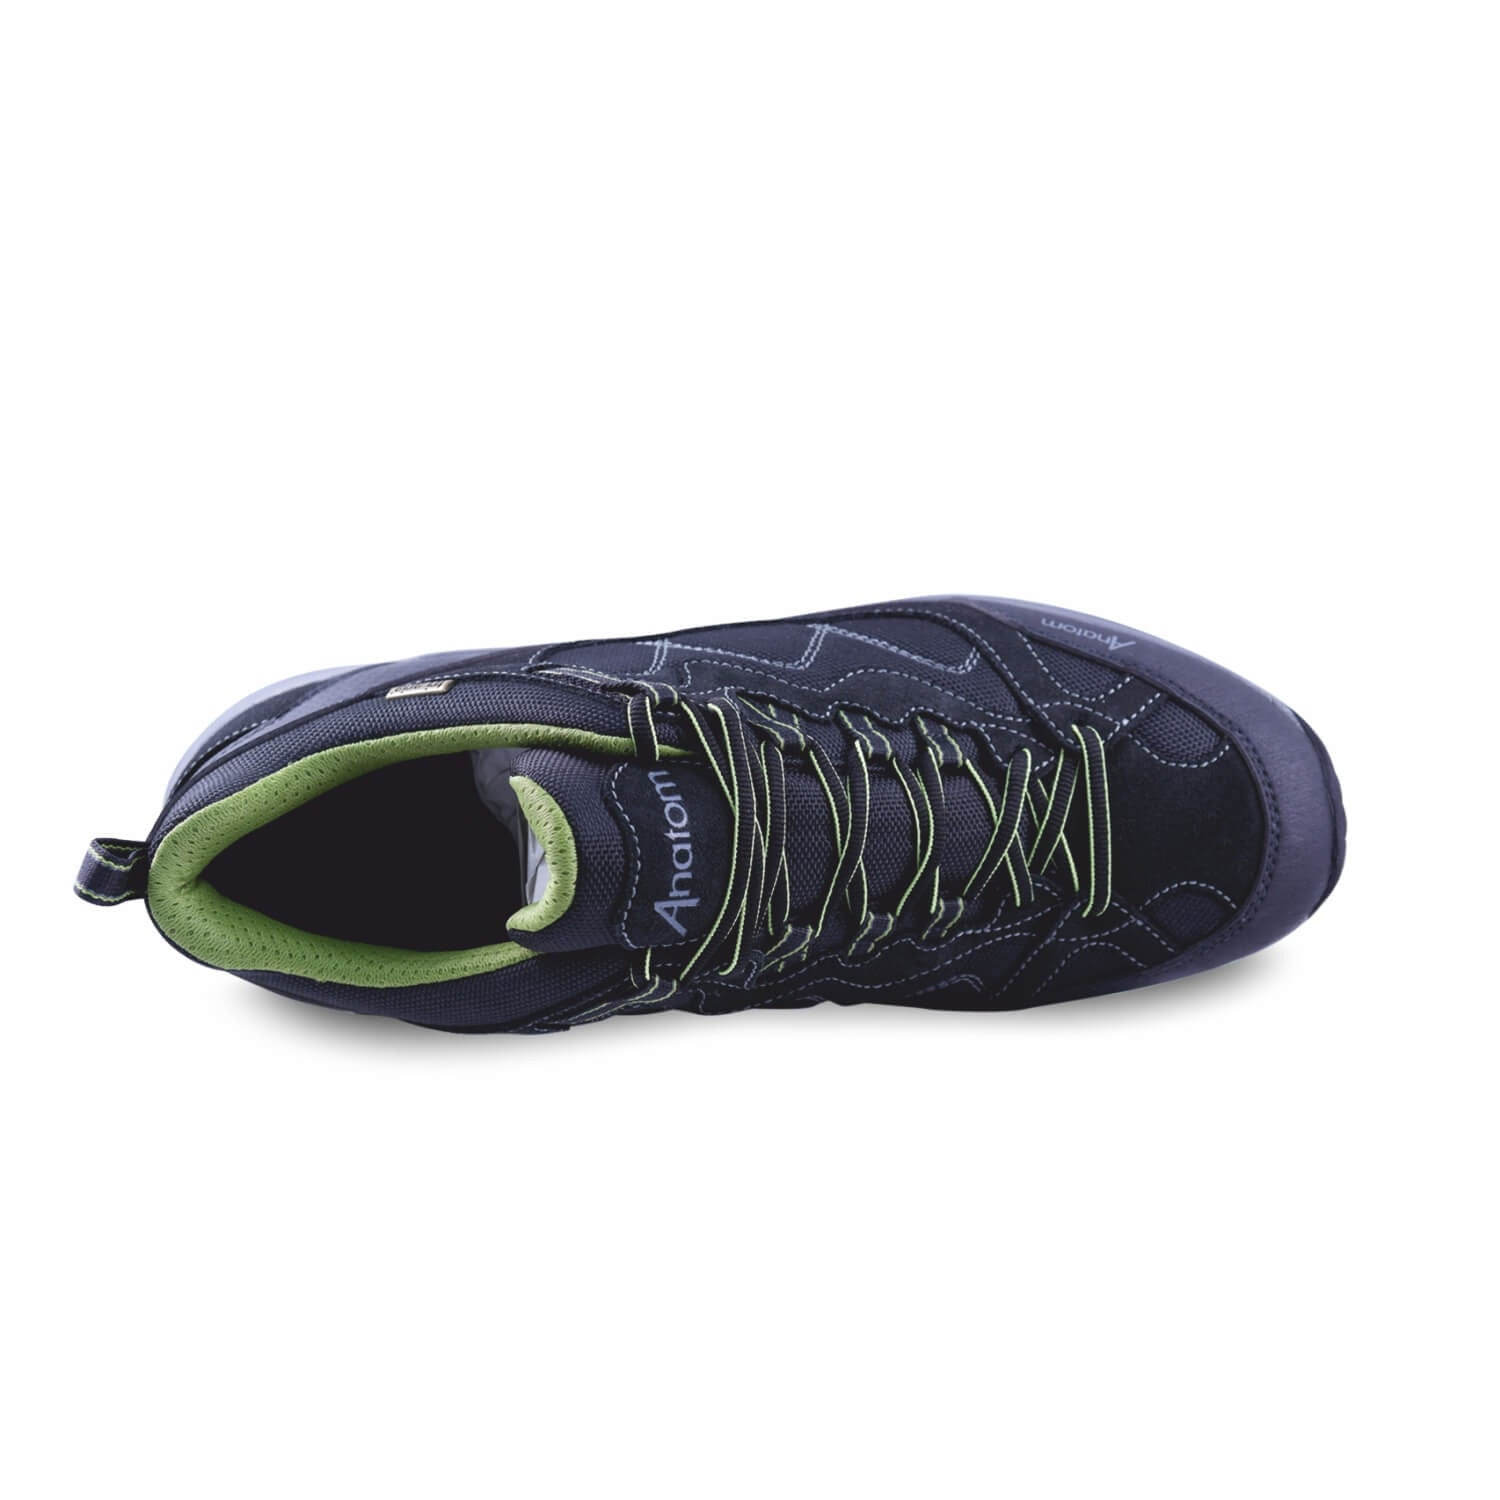 Multi Activity Shoe Men Reviews 40